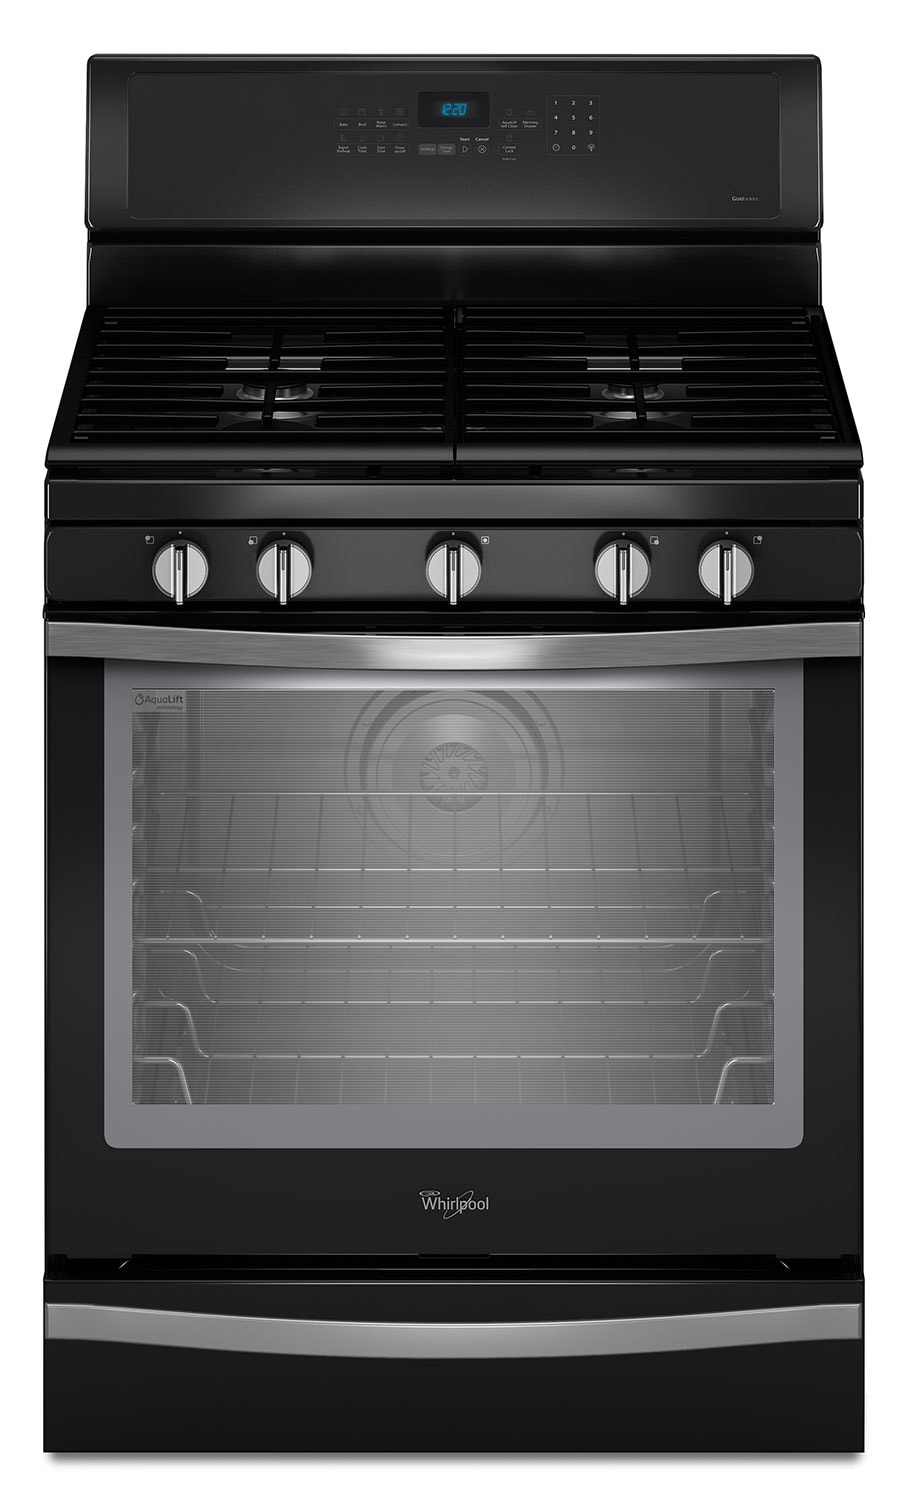 Cooking Products - Whirlpool Black Freestanding Gas Convection Range (5.8 Cu. Ft.) - WFG715H0EE